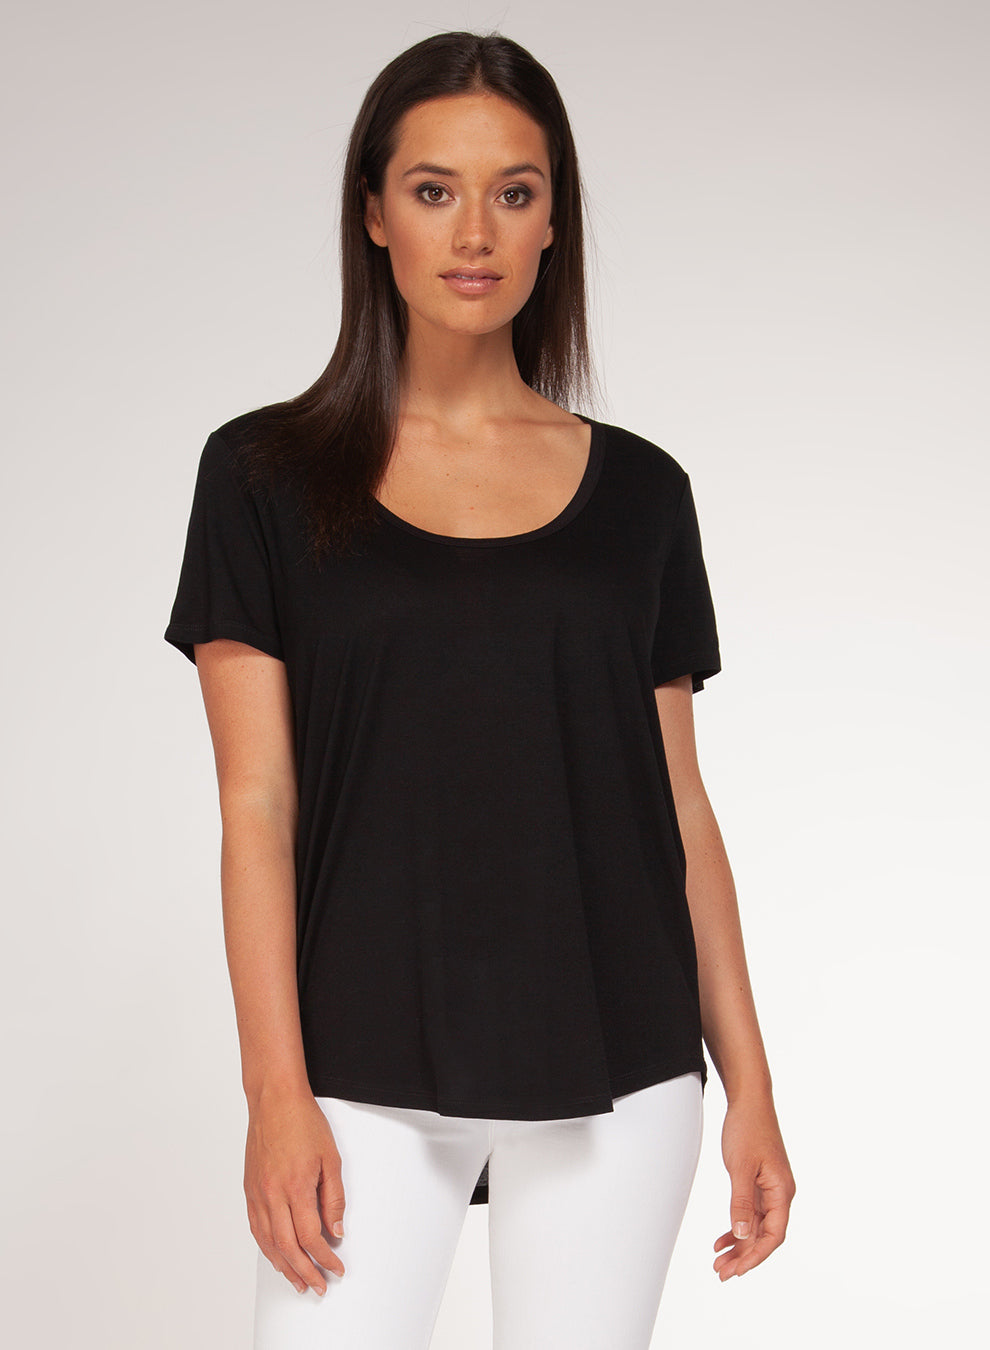 SHORT-SLEEVED SCOOP NECK BASIC TEE - BLACK